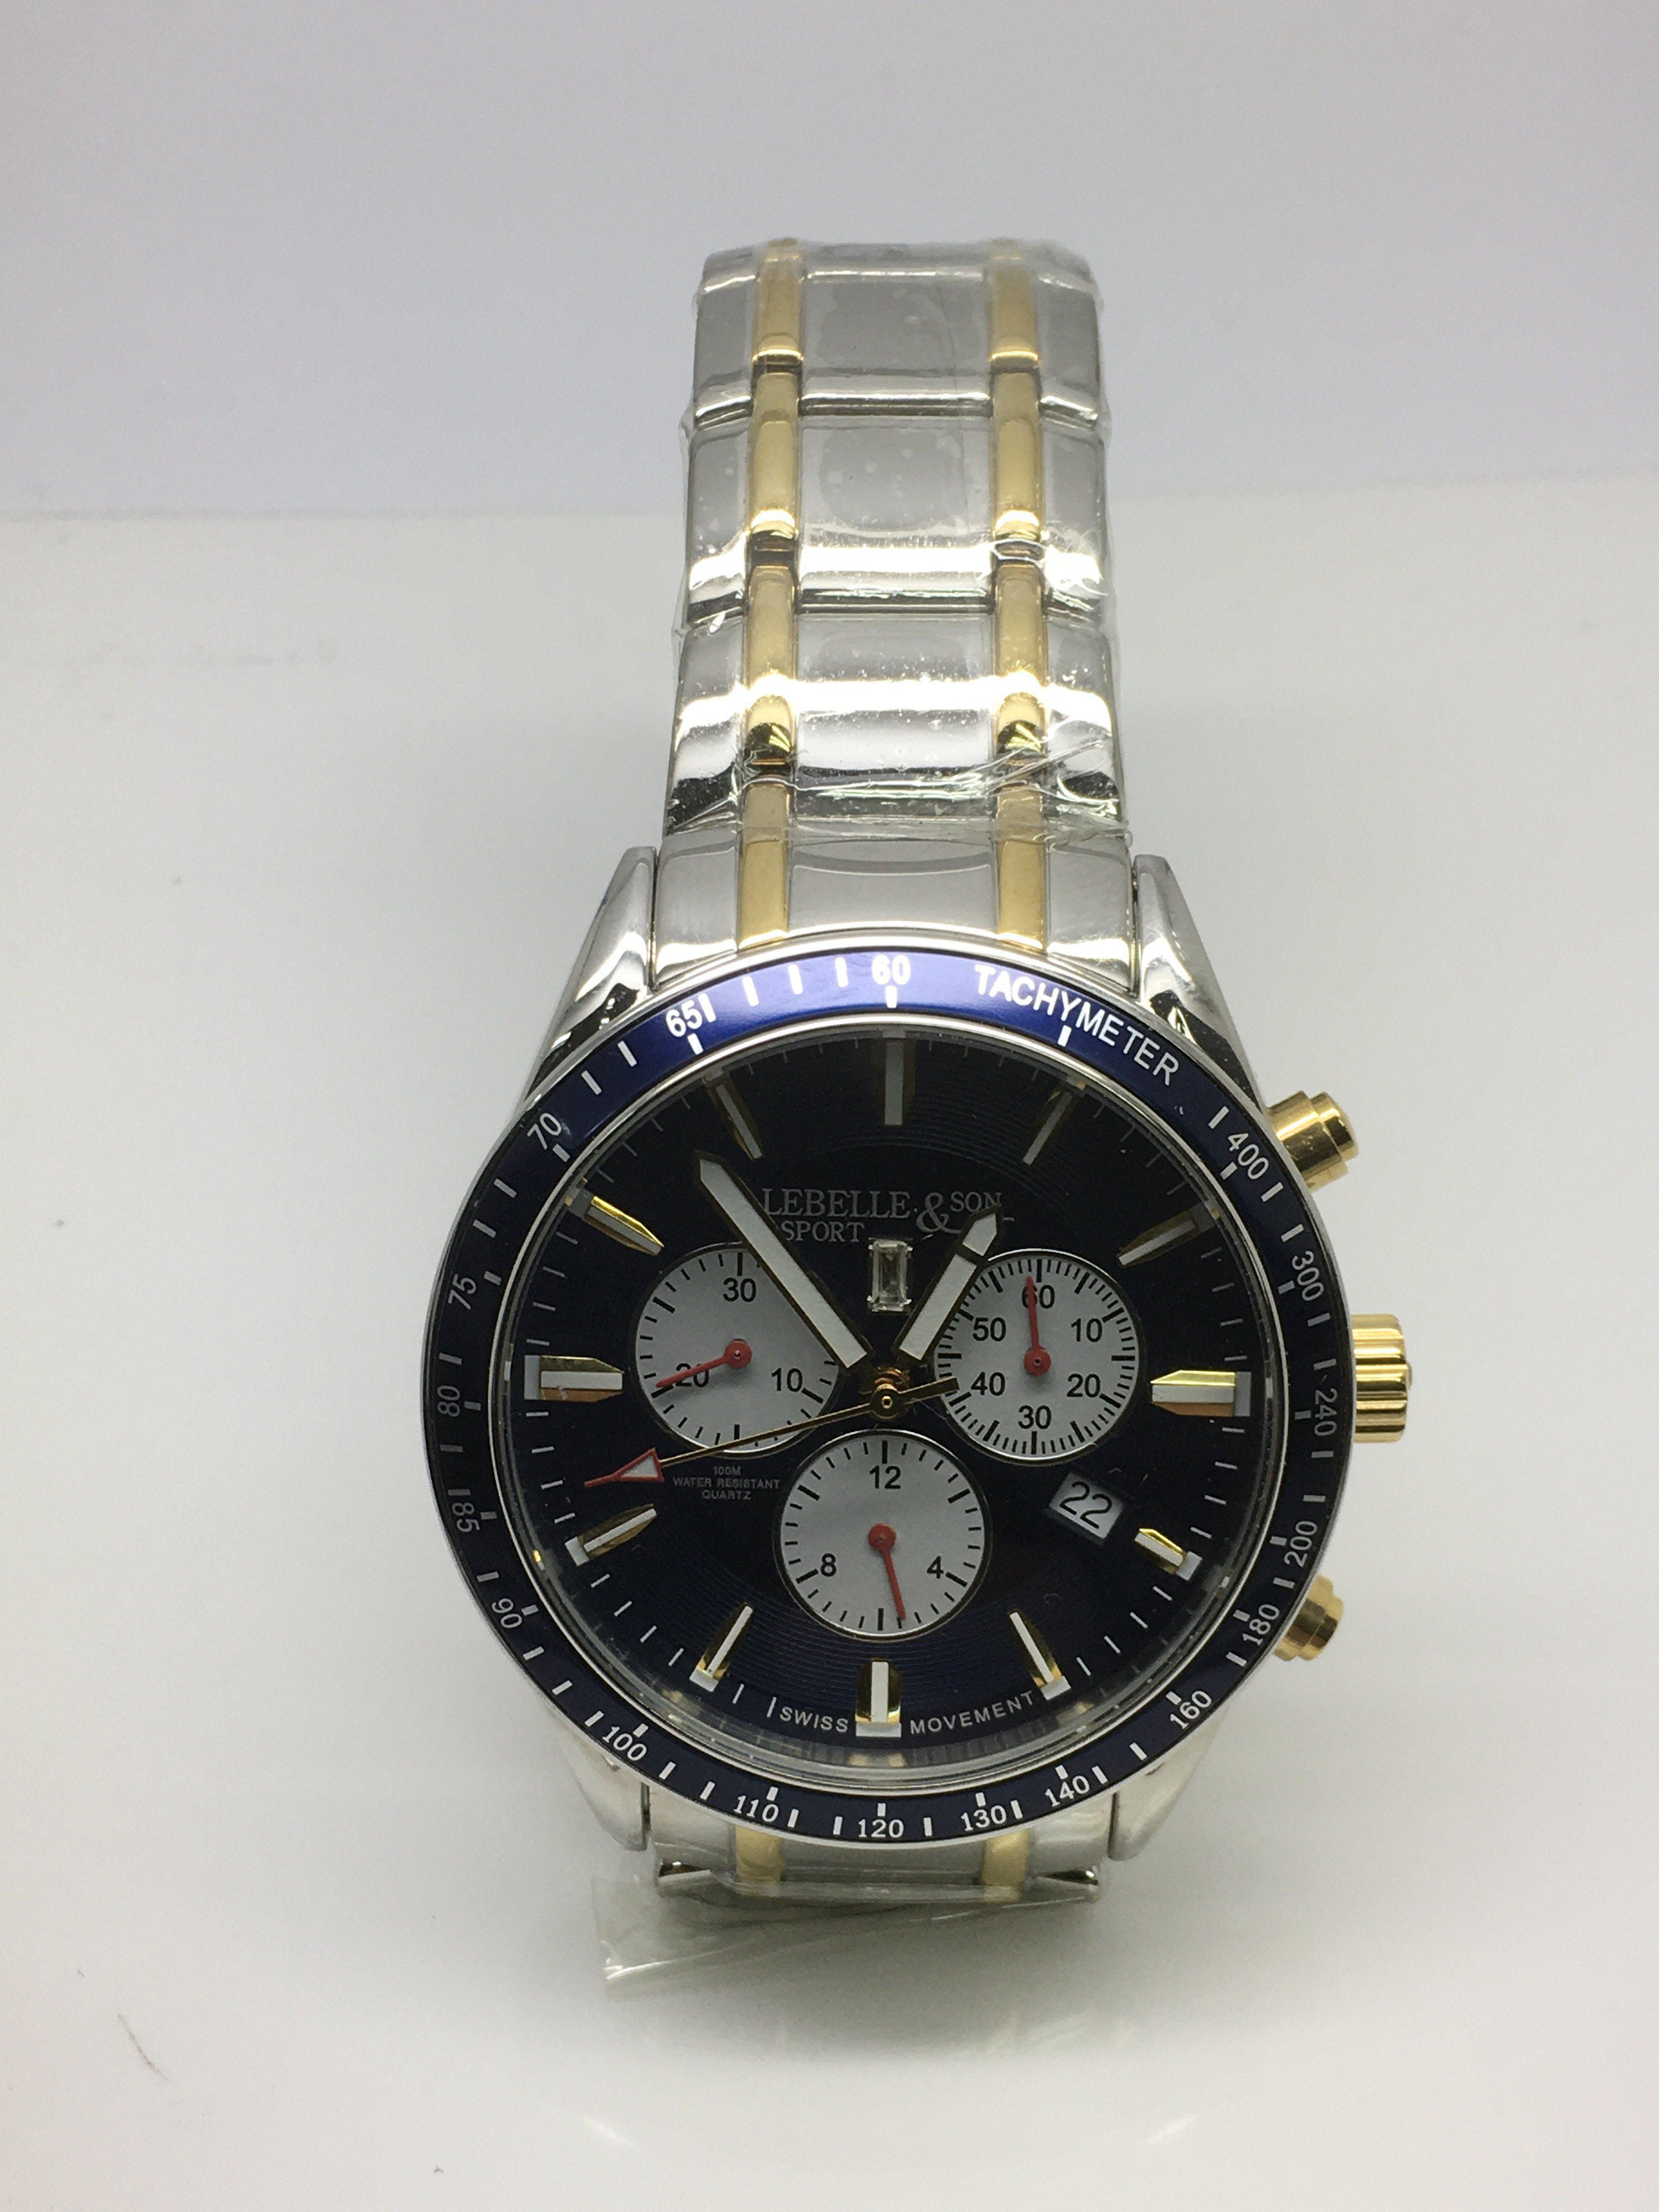 Lot 36 - A gents Lebelle sports chronograph watch.